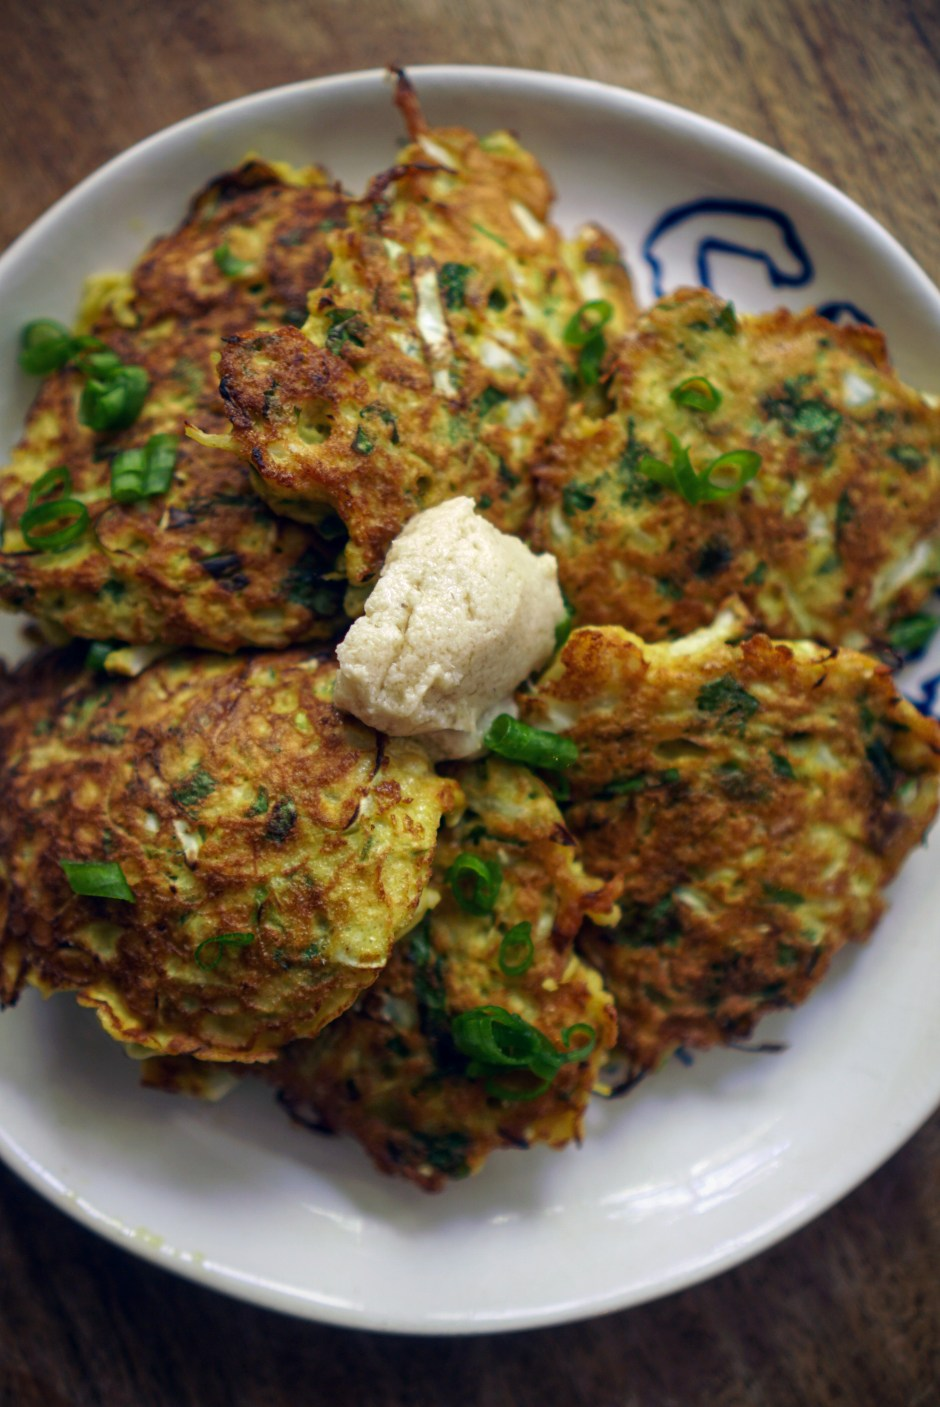 Cabbage, herbs and turmeric frittatas